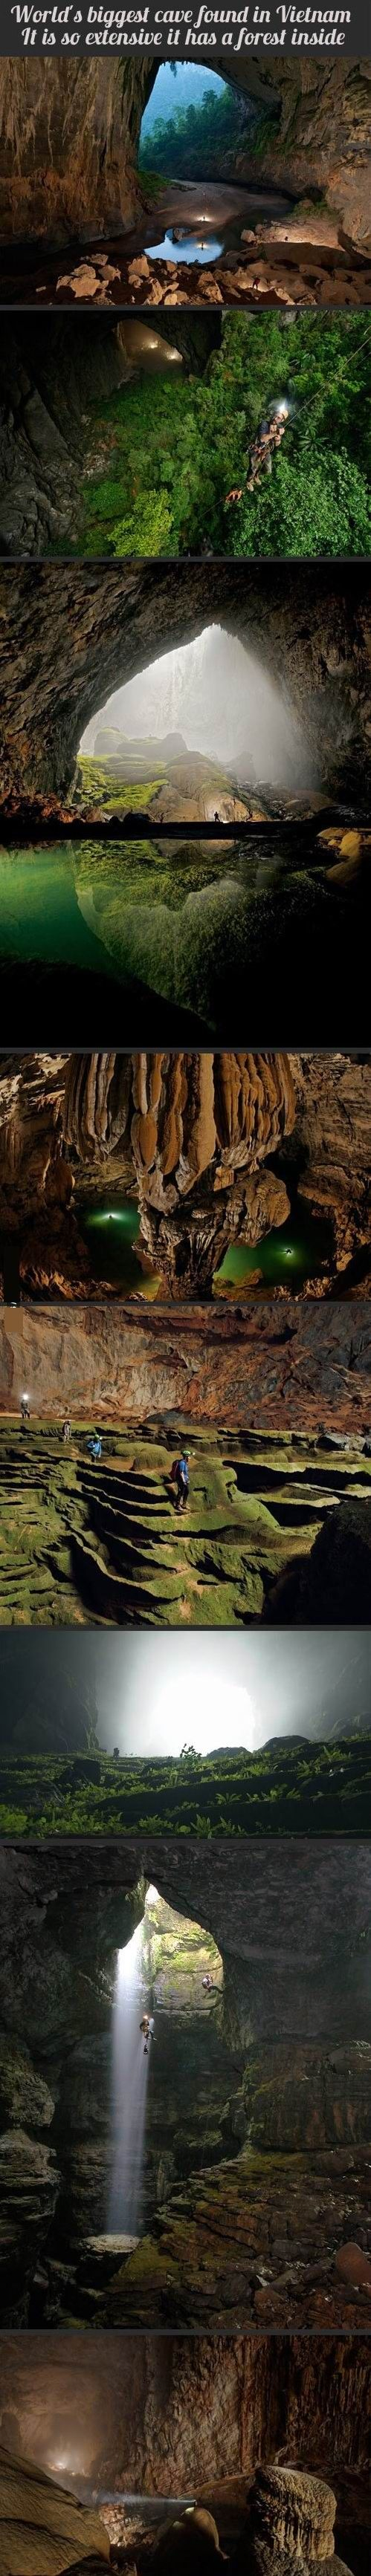 In pictures: Inside Hang Son Doong, the world's largest caves in Vietnam